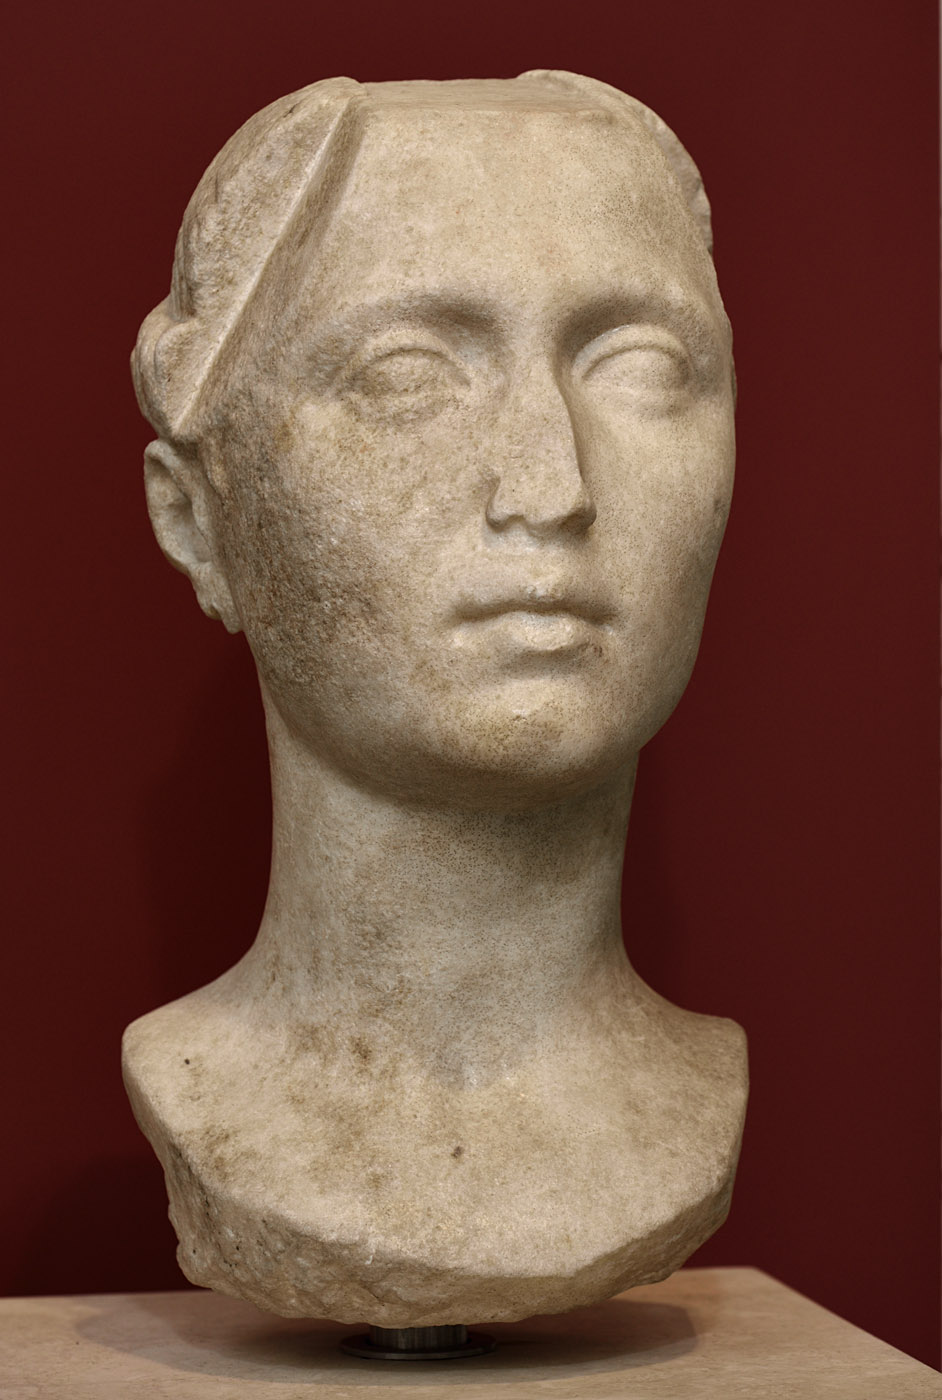 Unknown woman. Luna marble. Ca. 30—40 BCE. Inv. No. 126391. Rome, Roman National Museum, Palazzo Massimo alle Terme